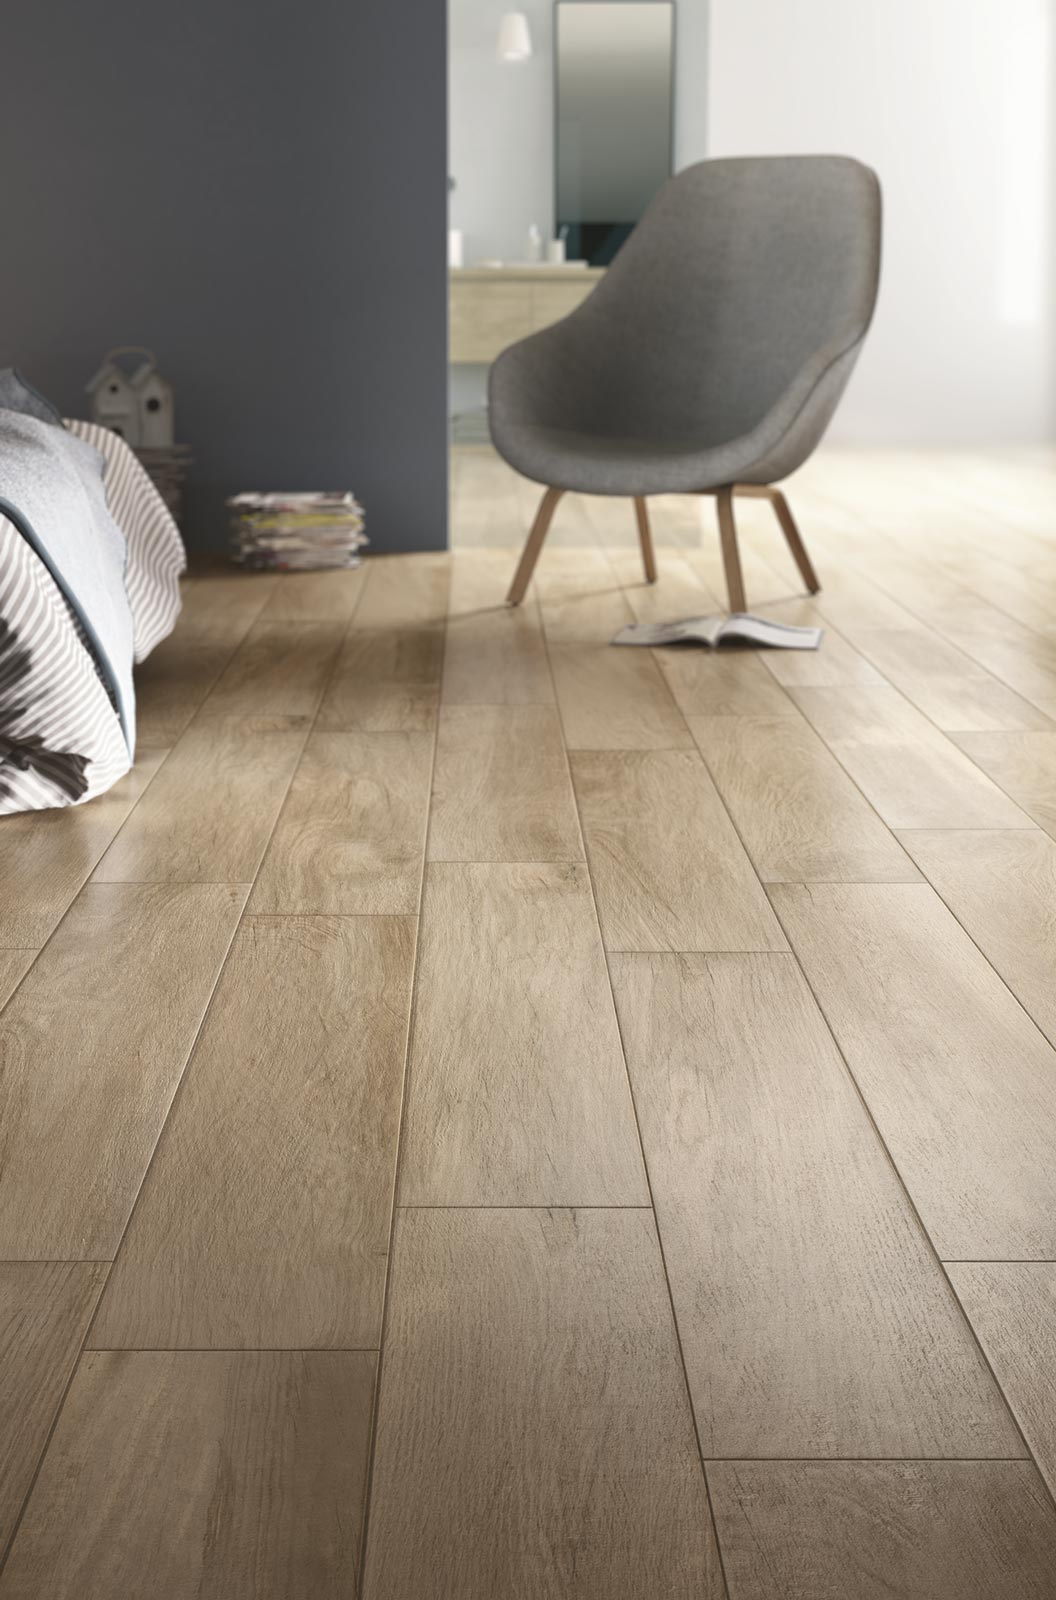 Parquet and wood effect tiles ragno ragno tiles wood effect5875 dailygadgetfo Gallery